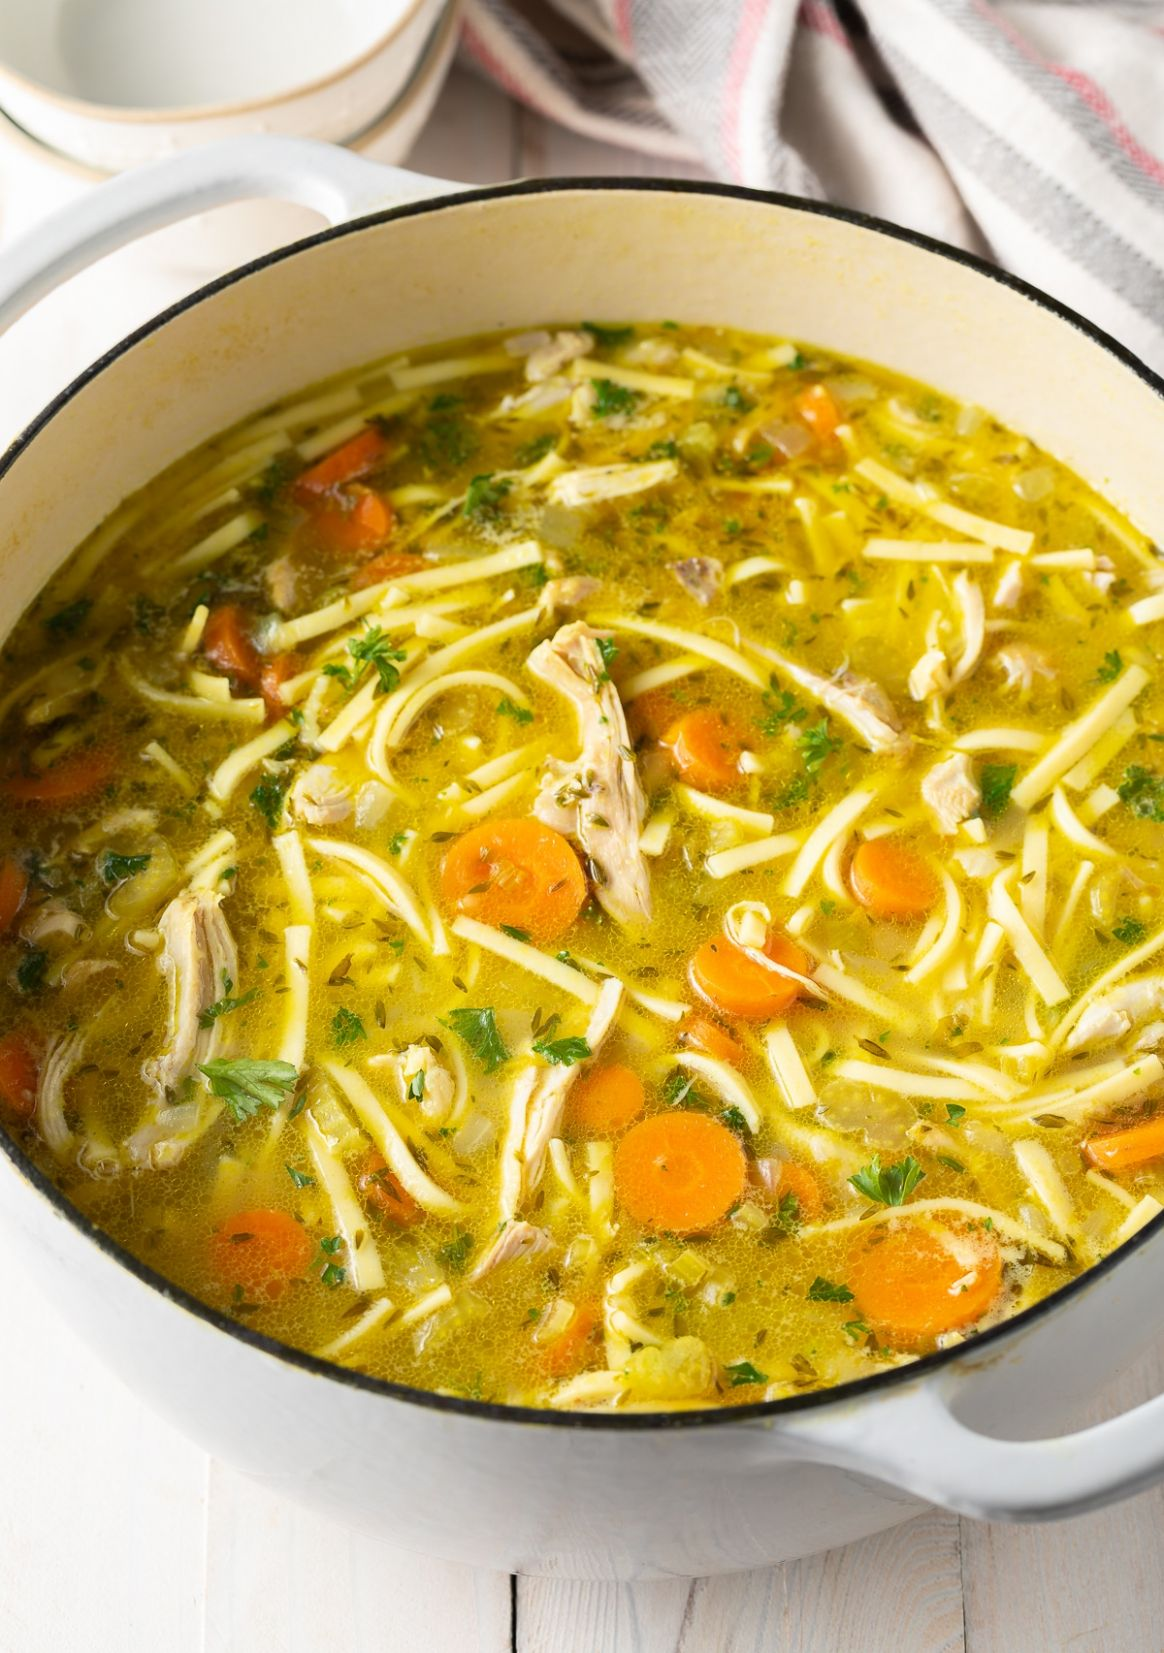 Homemade Chicken Noodle Soup Recipe - Recipes Chicken Soup